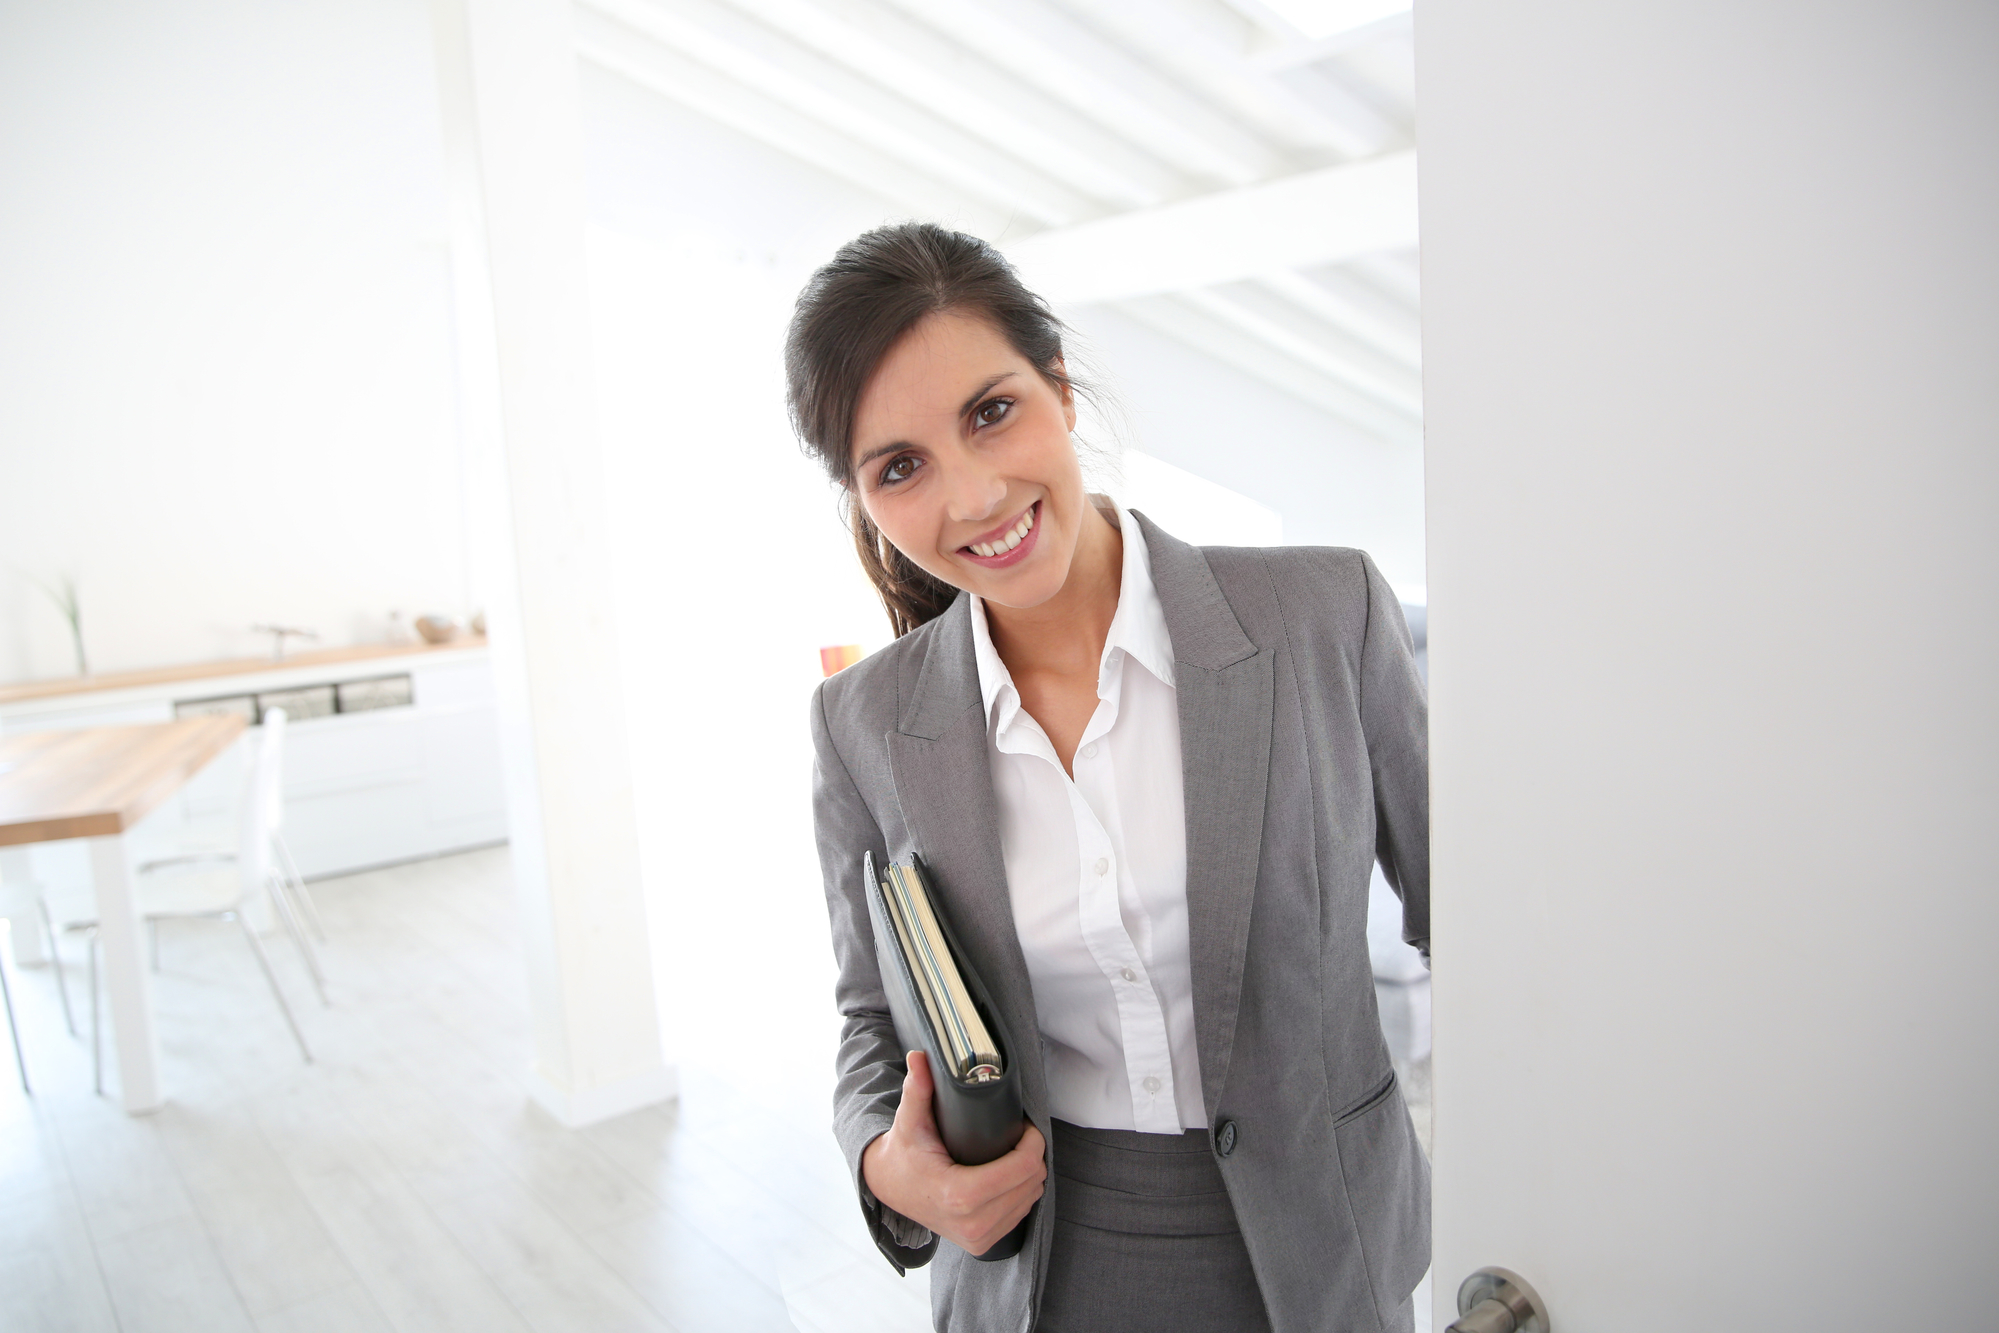 Where can I find the best West Palm Beach Real Estate Agents?